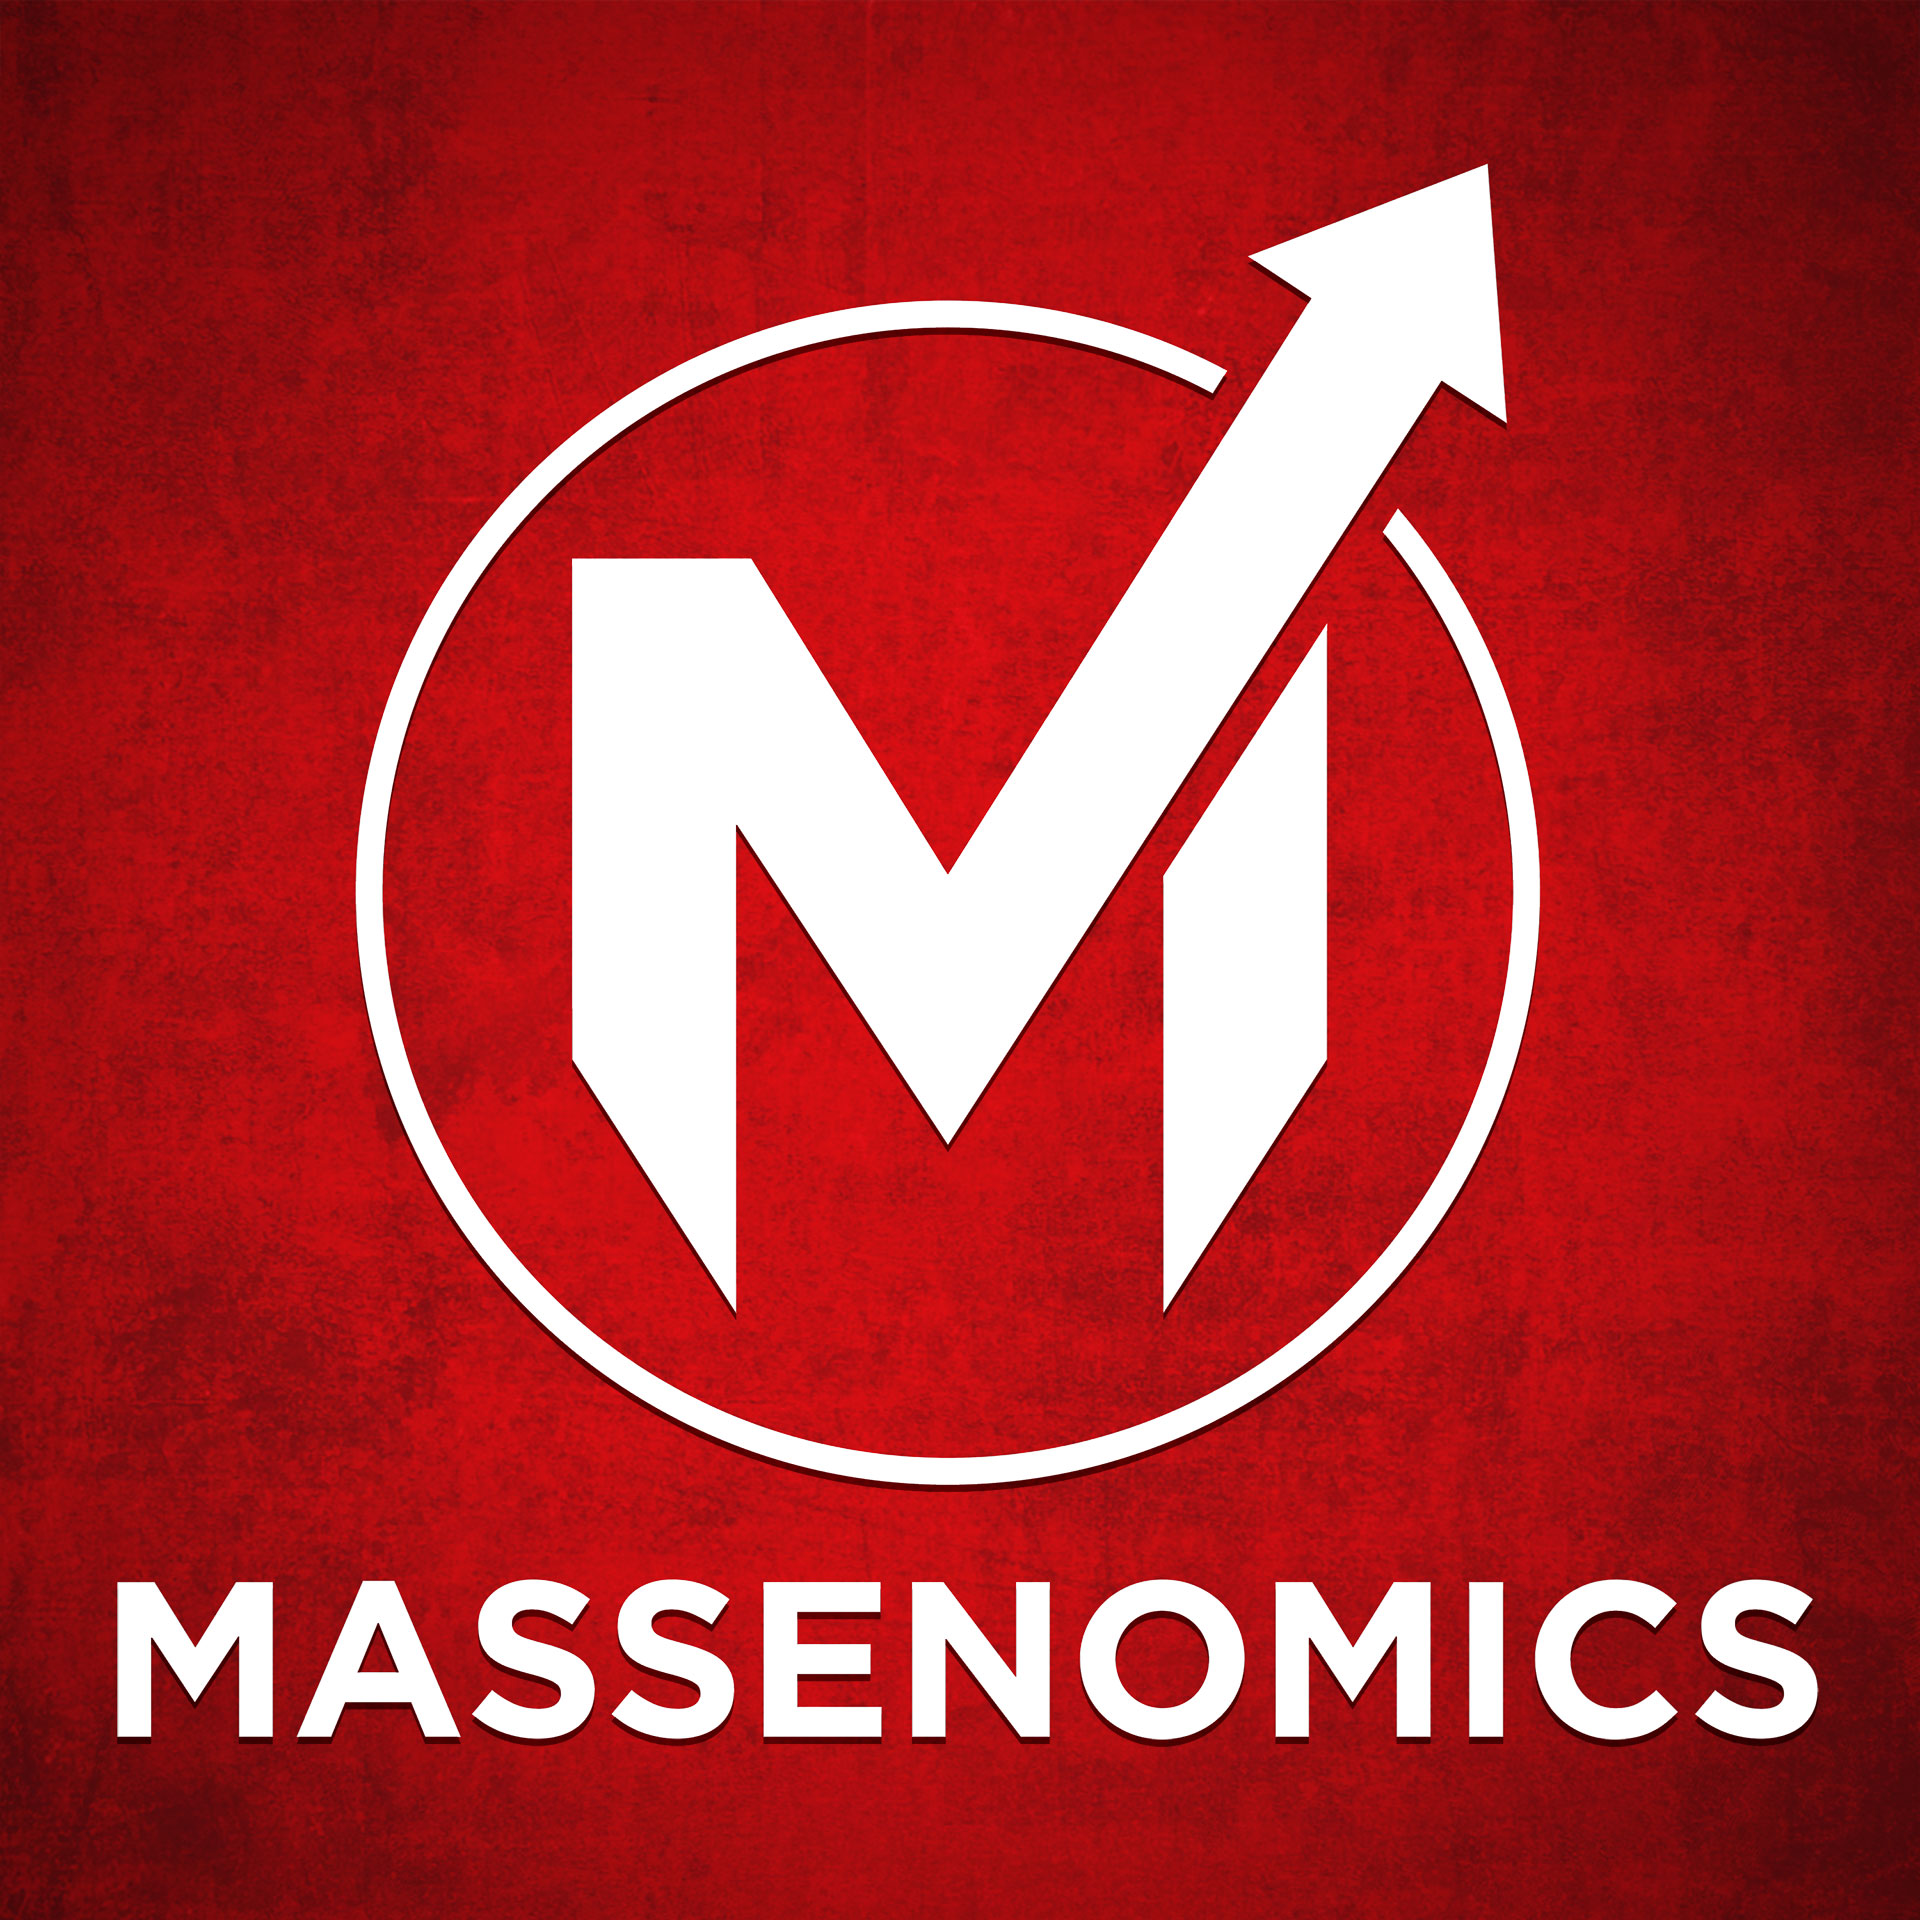 massenomics logo